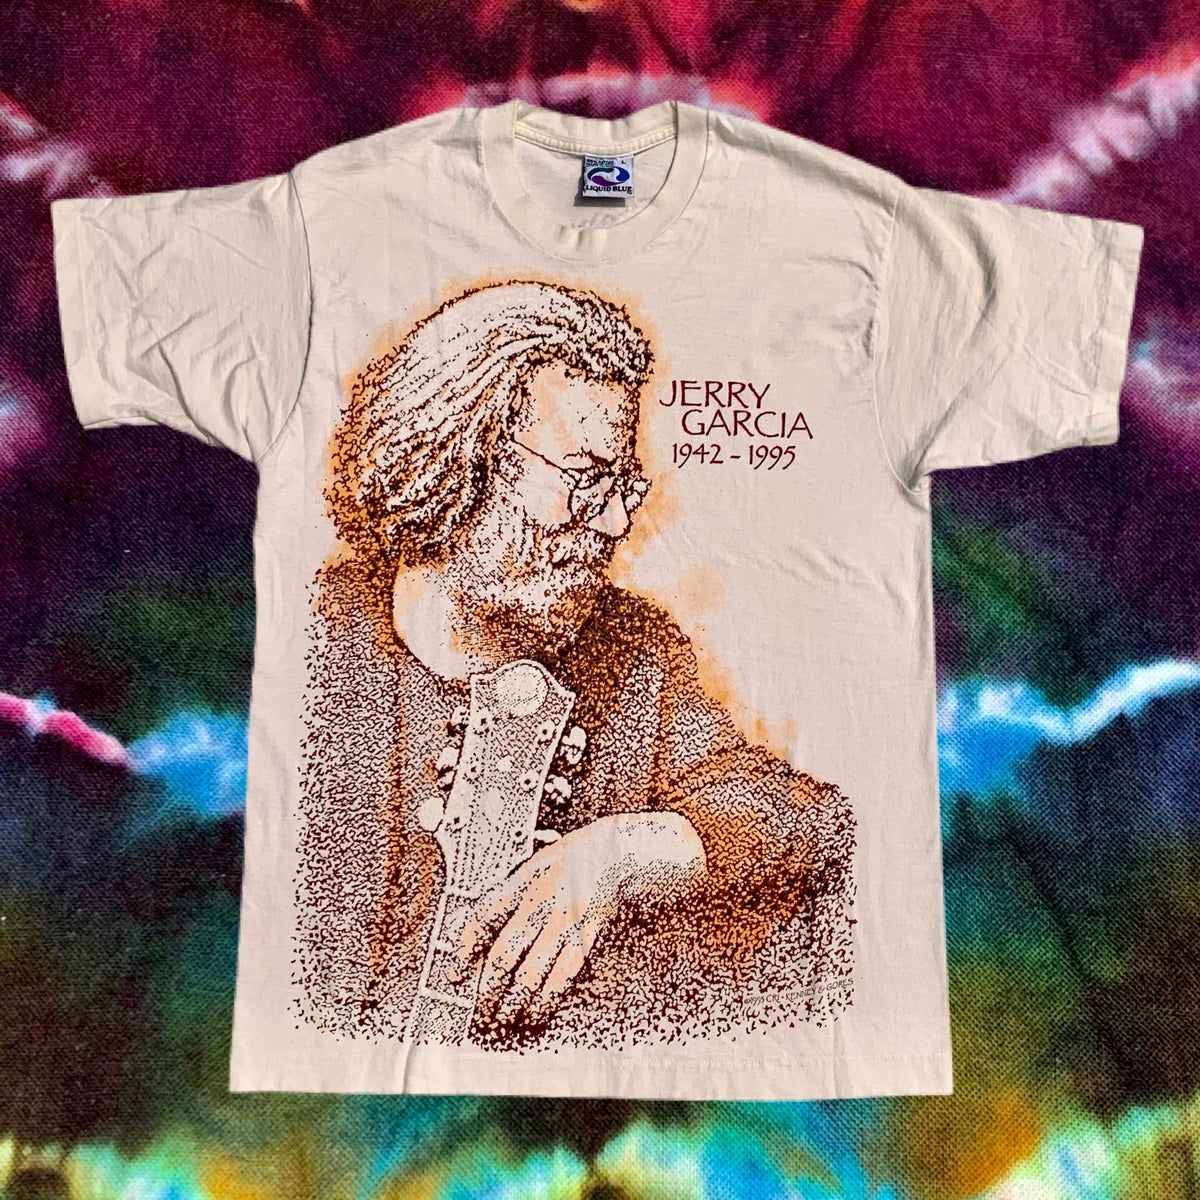 Original Vintage Jerry Garcia 1942-1995 Tee!! Large